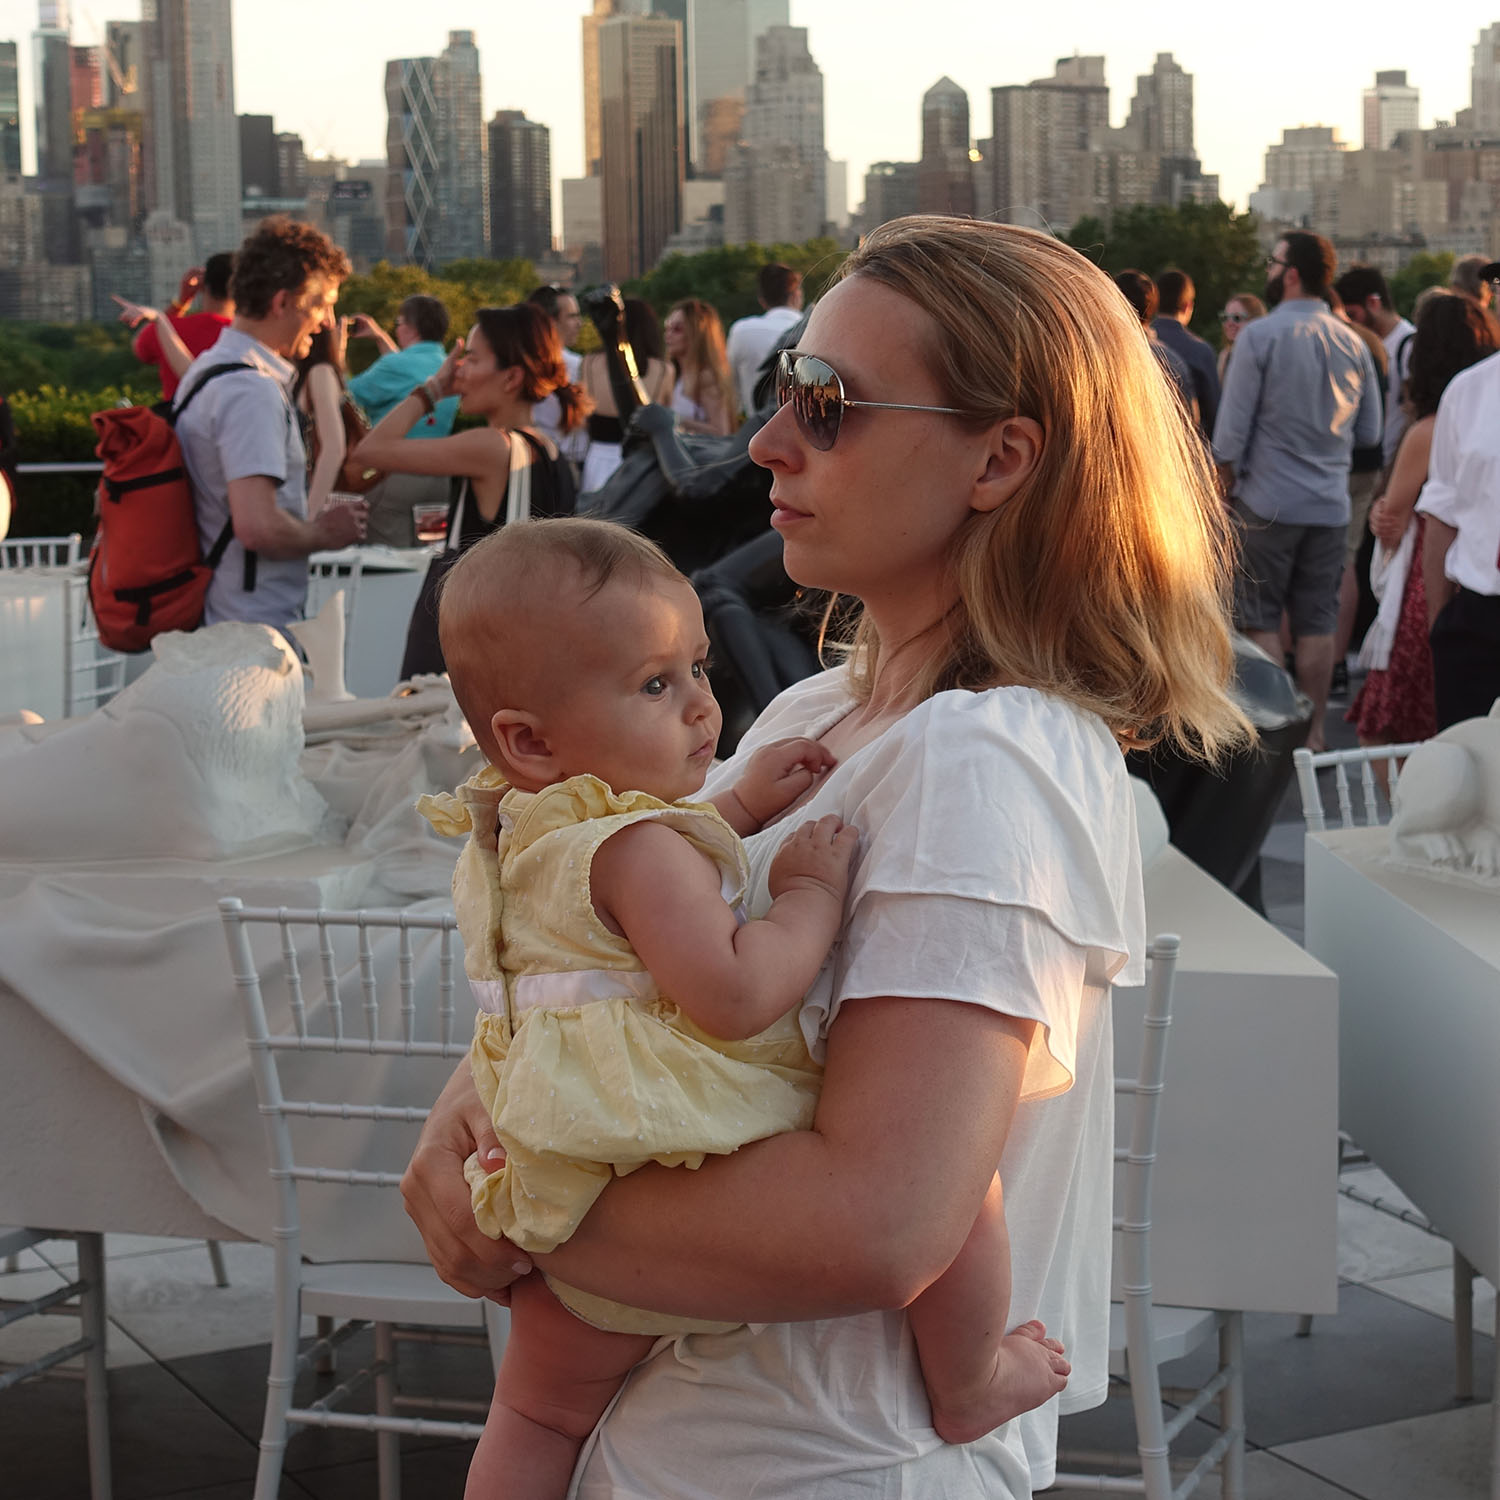 Anastasia Louise Sudentas visits an exhibition by Argentinian artist Adrián Villar Rojas on the Met's Roof